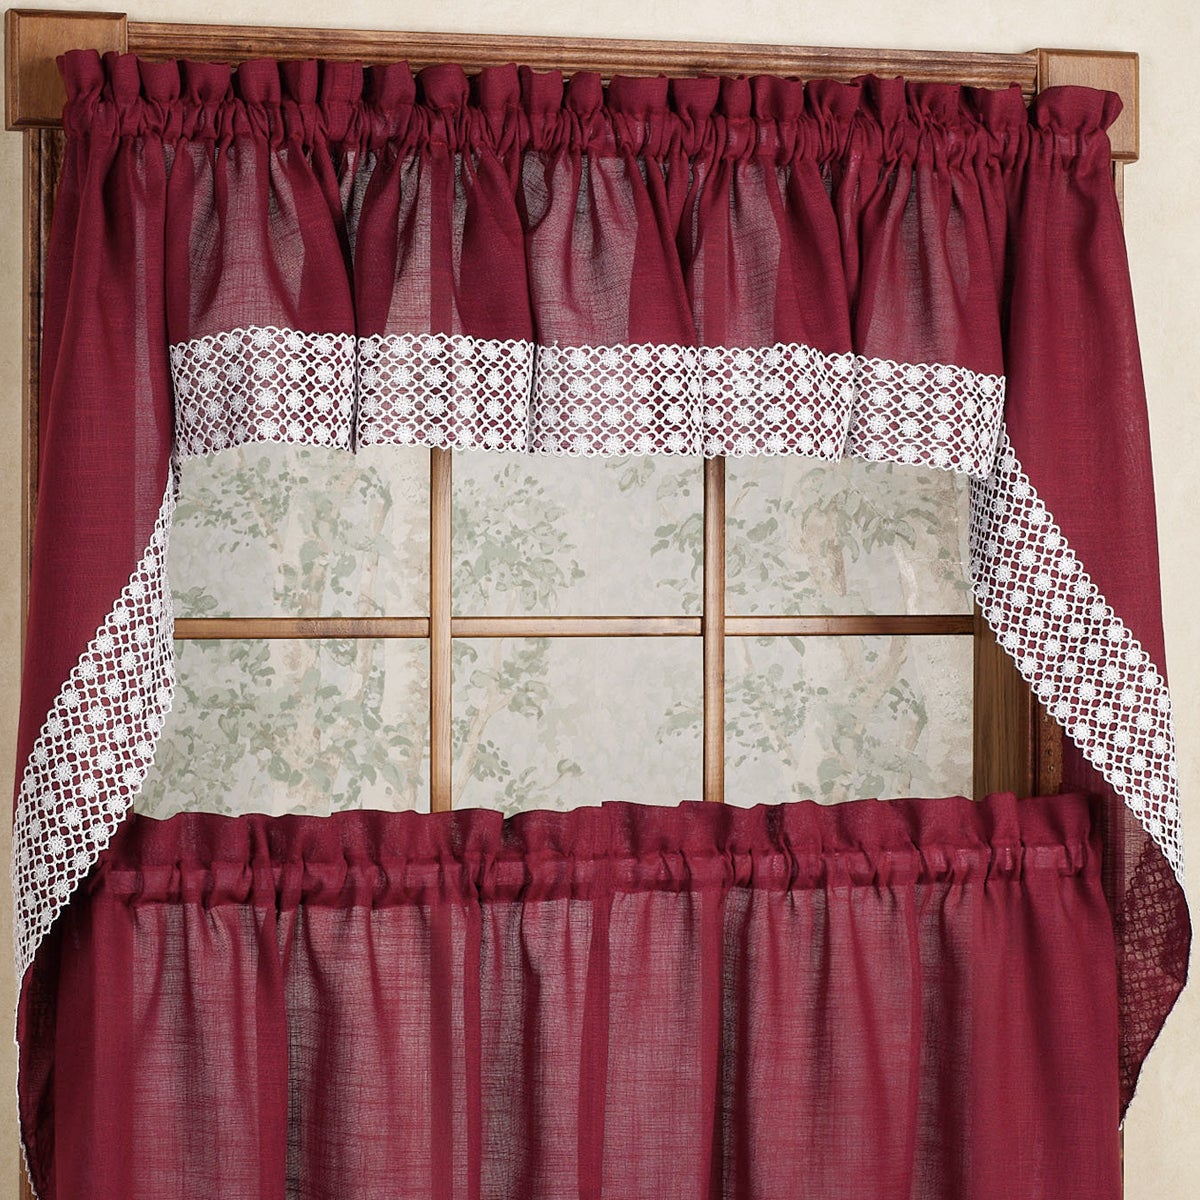 Burgundy Country Style Curtain Parts With White Daisy Lace Accent Tier, Swag And Valances Throughout Country Style Curtain Parts With White Daisy Lace Accent (View 2 of 20)